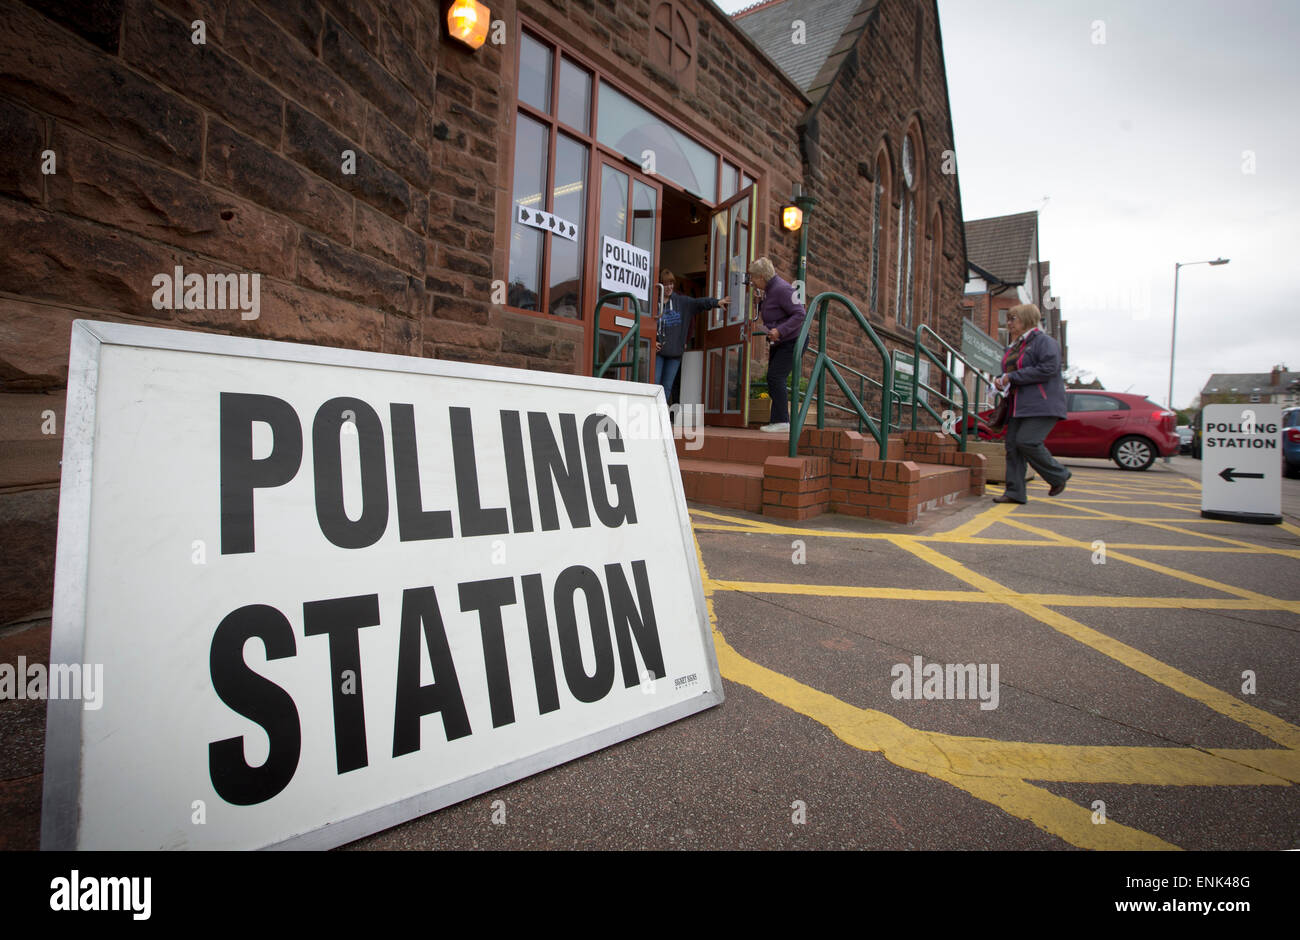 Voters arriving at a polling station in West Kirby, Wirral to cast their votes at the 2015 UK General Election. - Stock Image